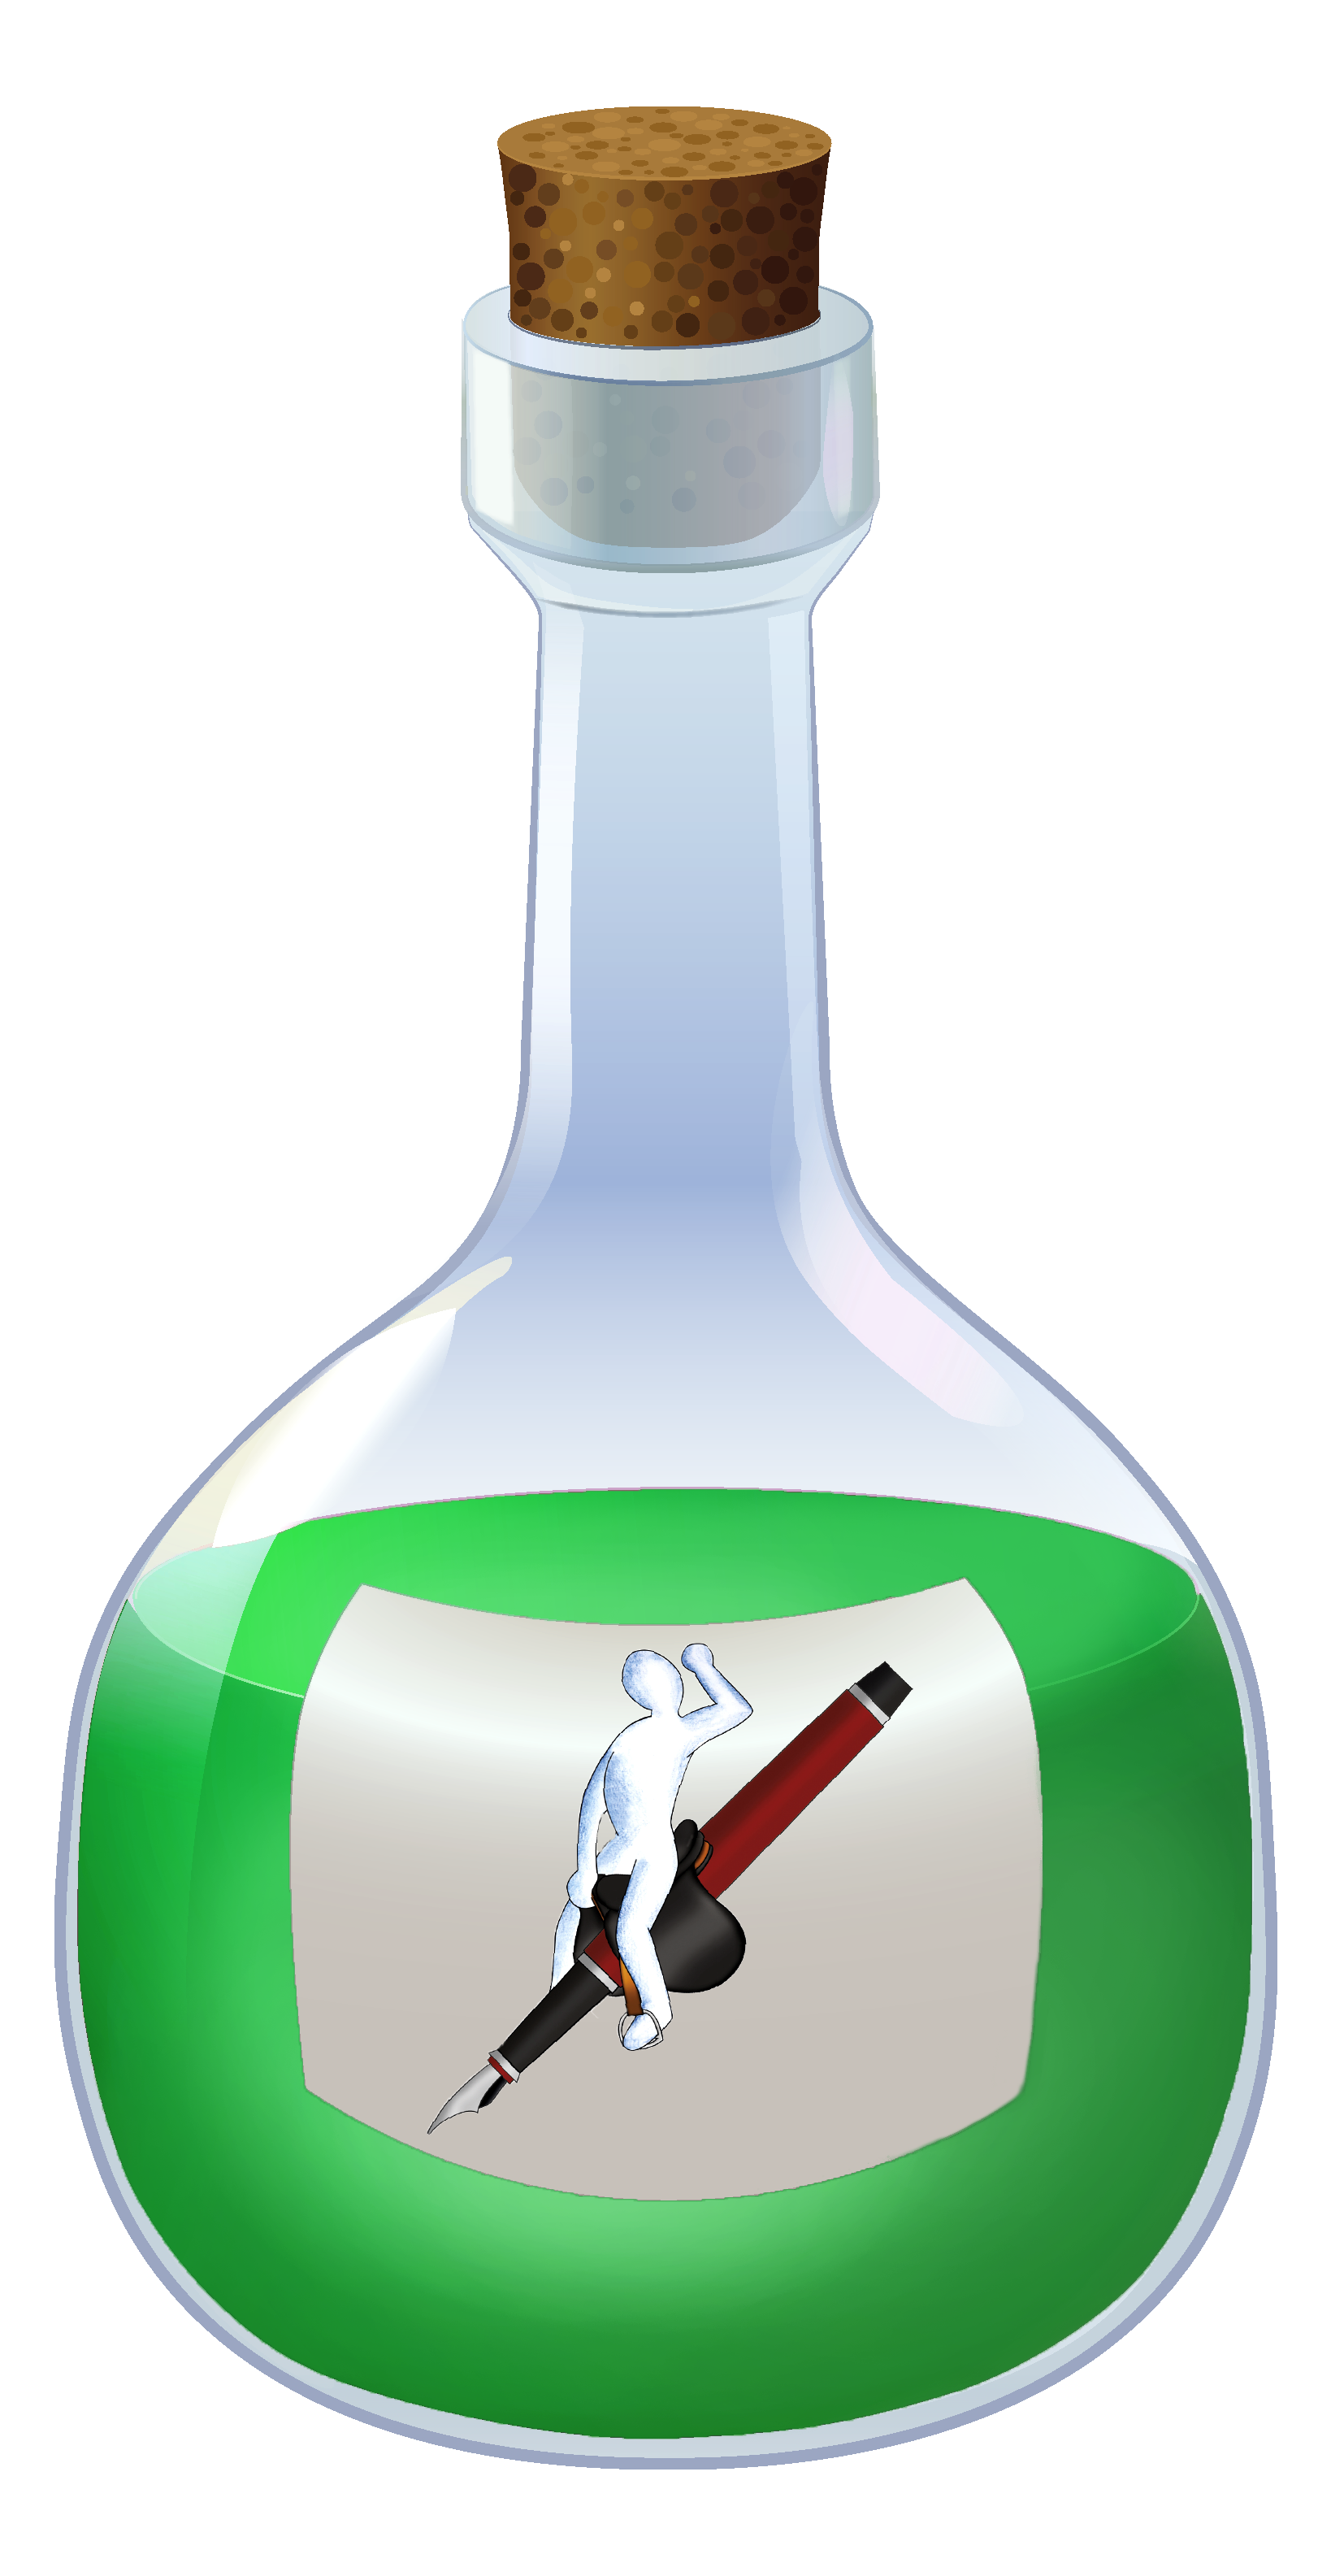 Little antidote thank you. Lab clipart vial